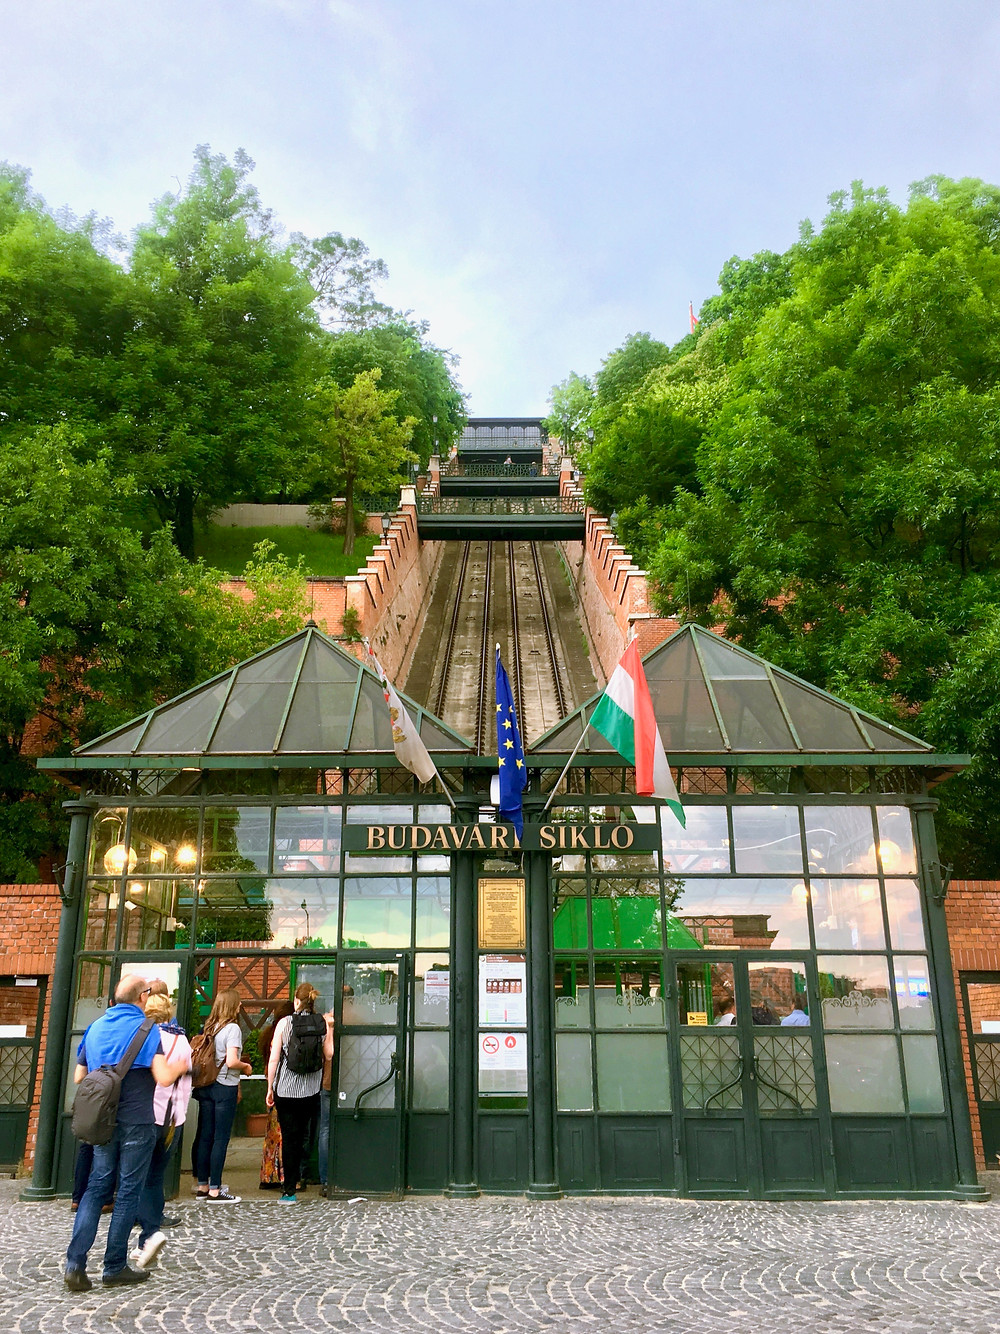 Looking up from the Budavári Sikló station at the base of Castle Hill to the steep tracks climbing up on the Buda side of Budapest, Hungary